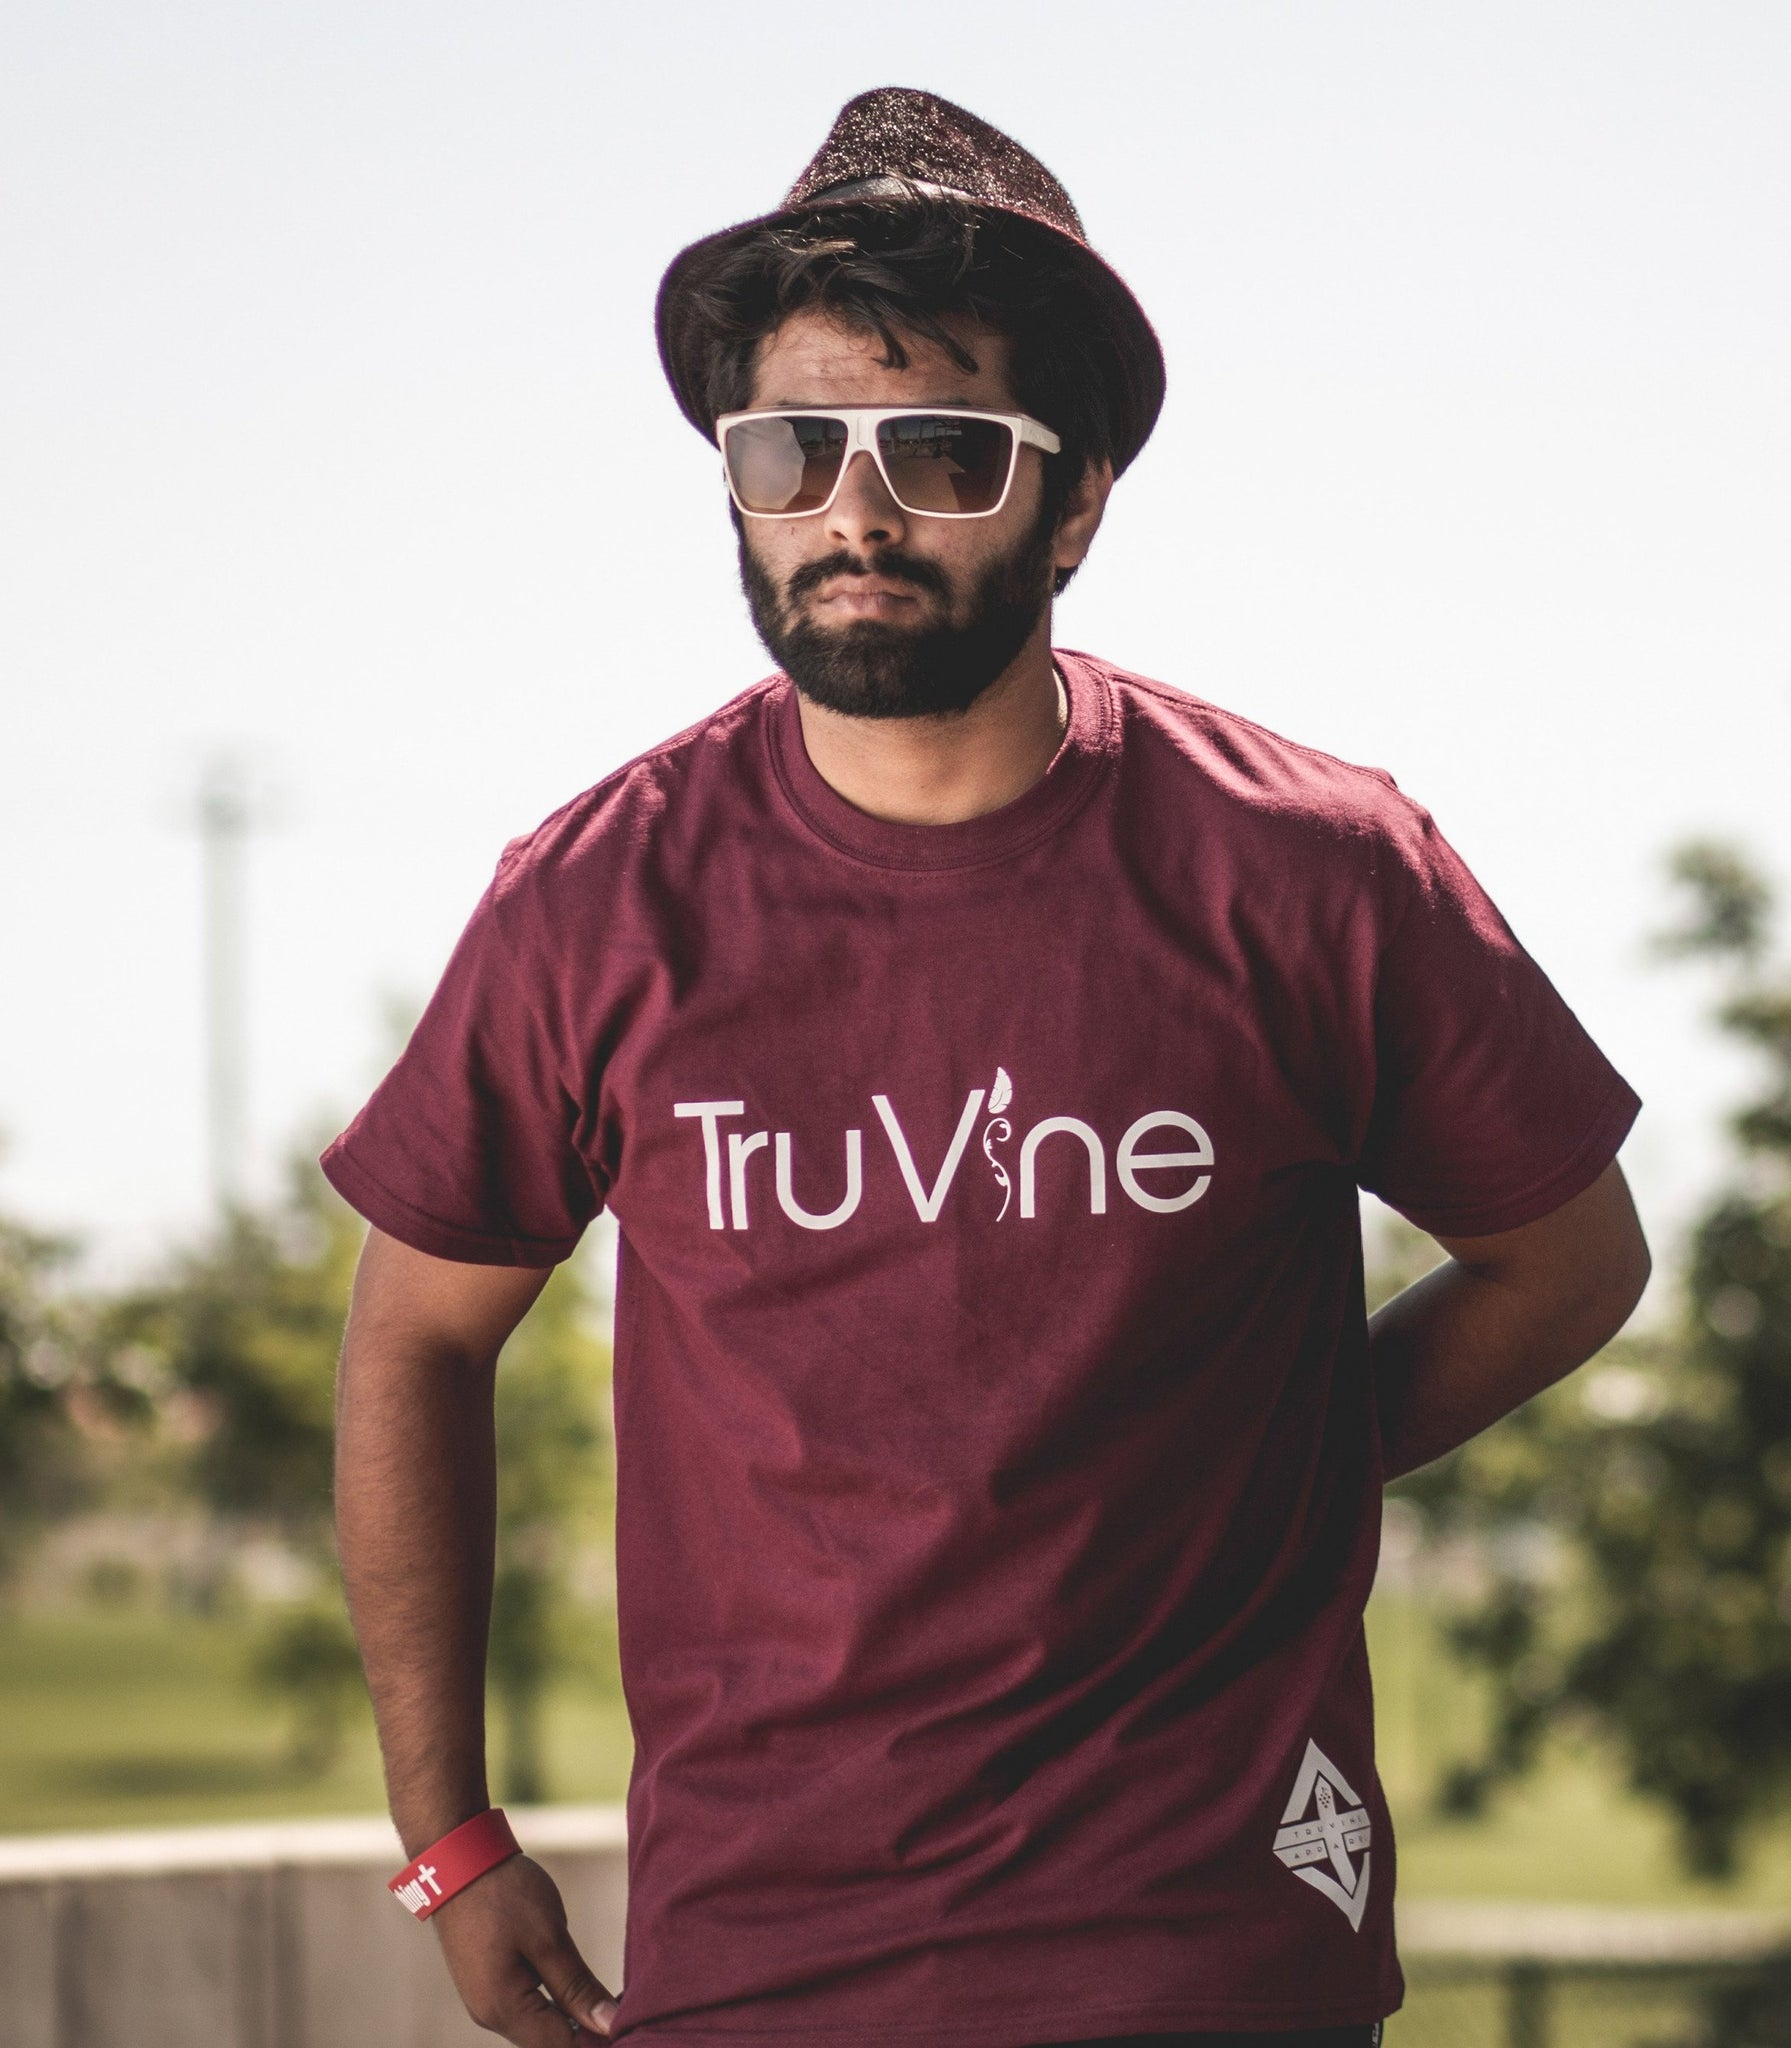 TruVine Unisex Tee (multiple color options)